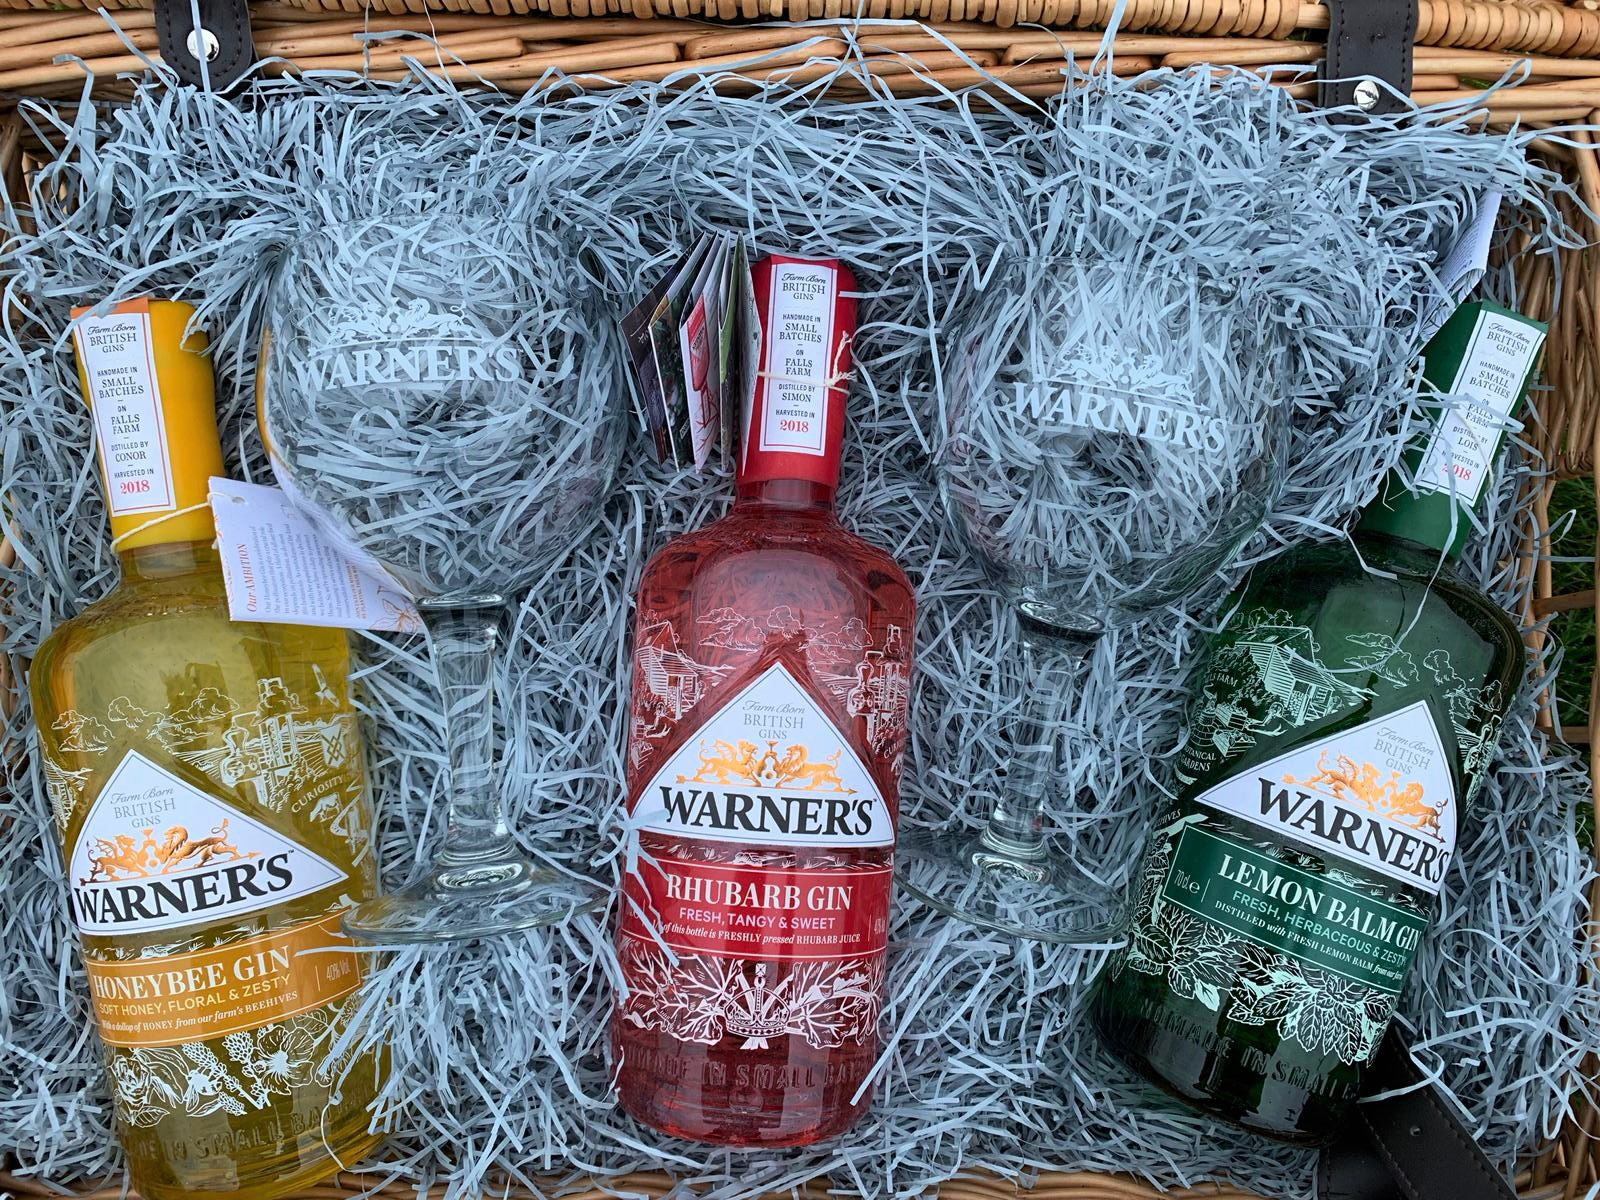 6:05pm: Epic hamper from Warners Gin